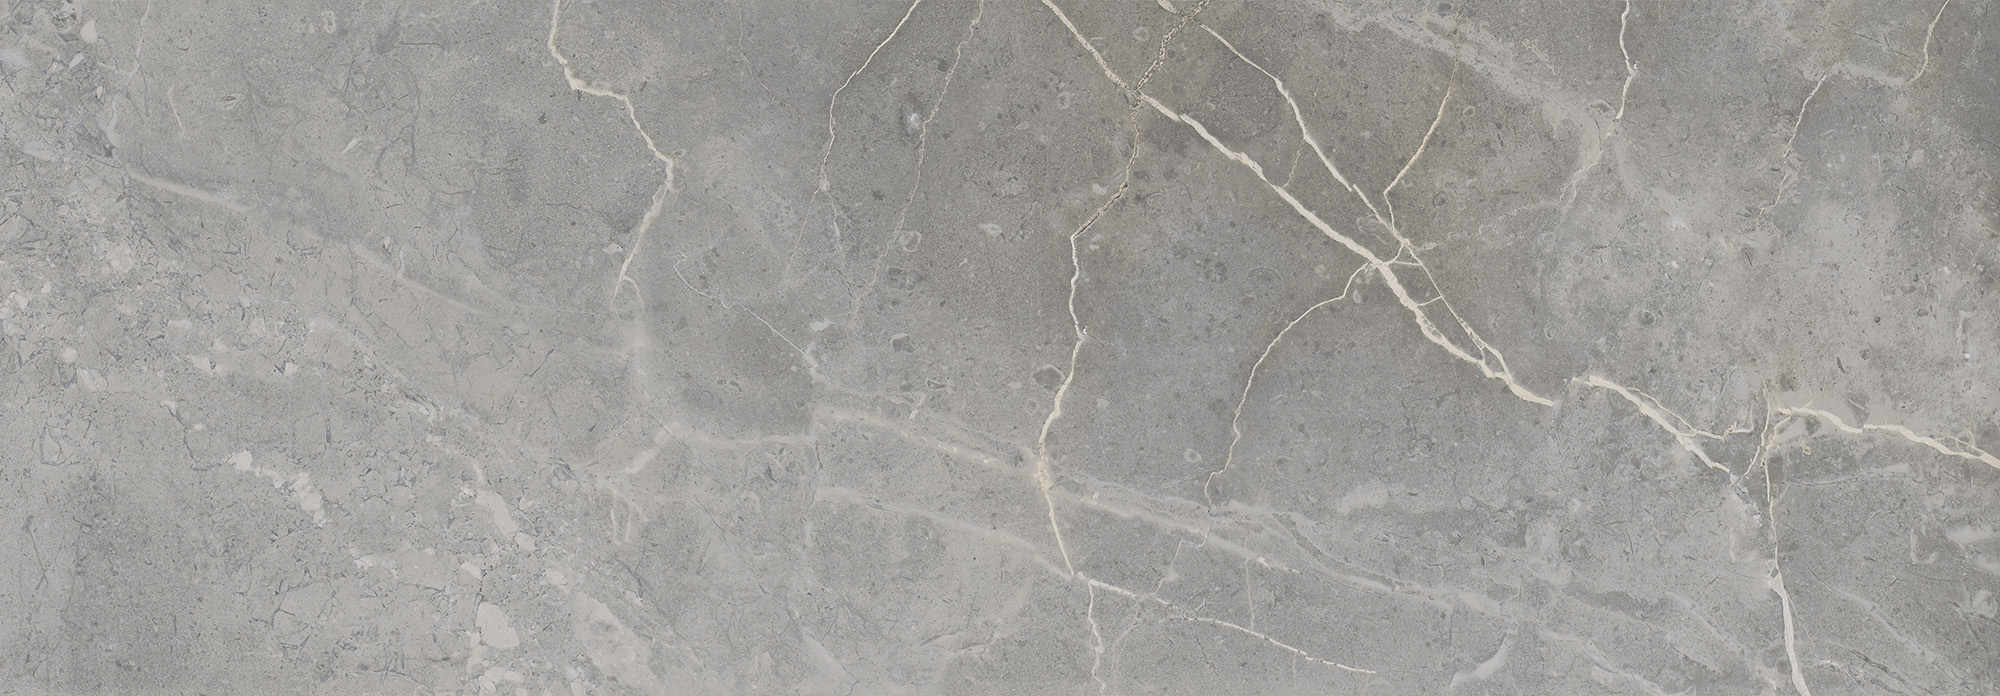 0541575, Marble Boutique Wall, Harmaa, seina